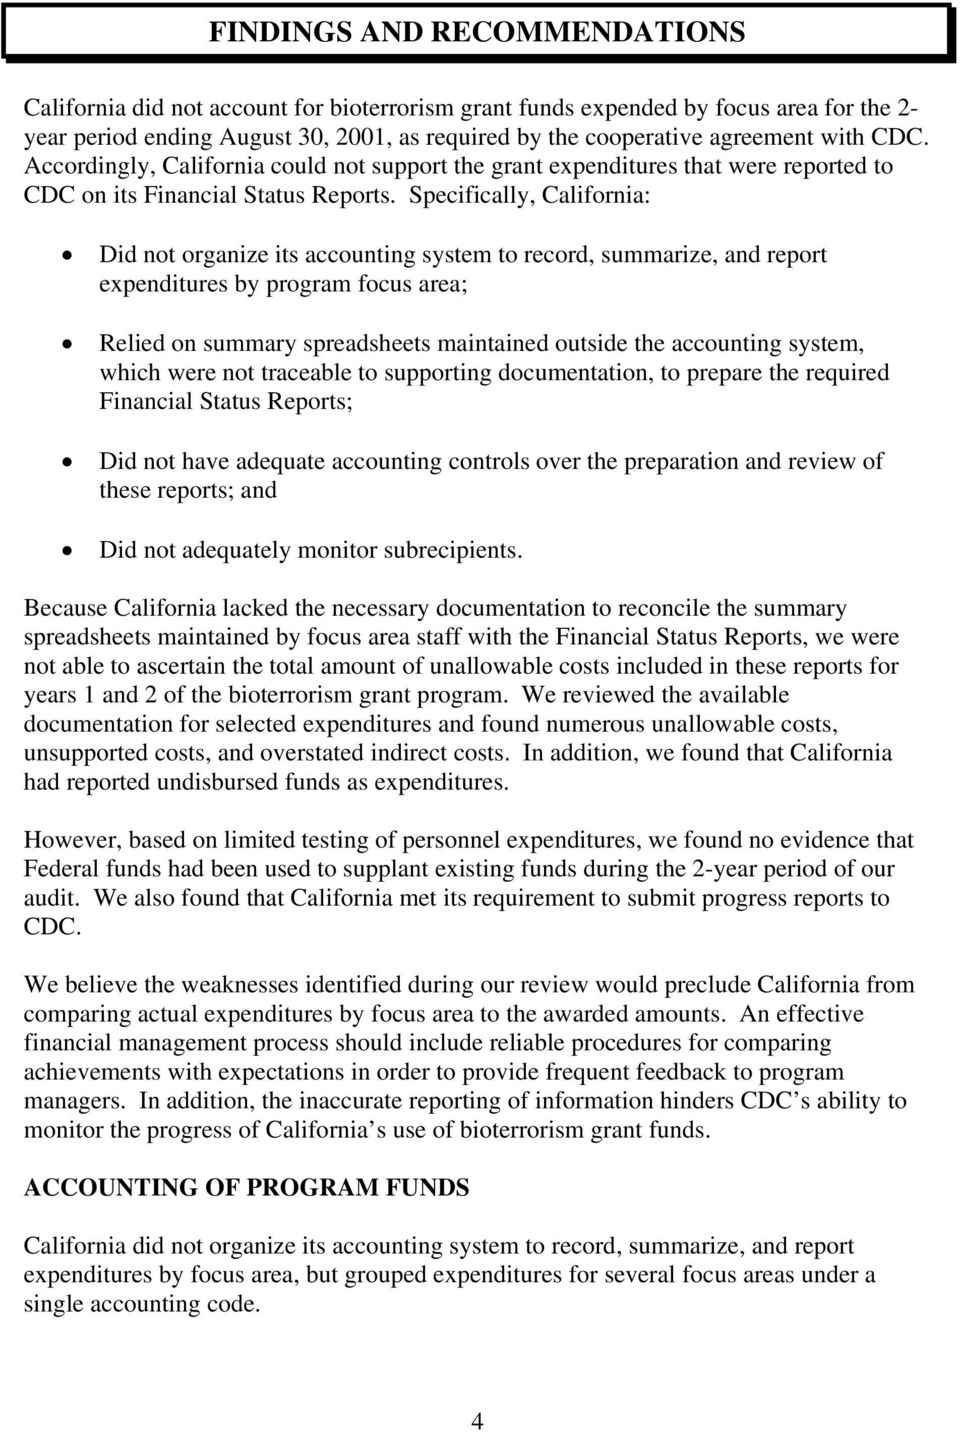 Specifically, California: Did not organize its accounting system to record, summarize, and report expenditures by program focus area; Relied on summary spreadsheets maintained outside the accounting